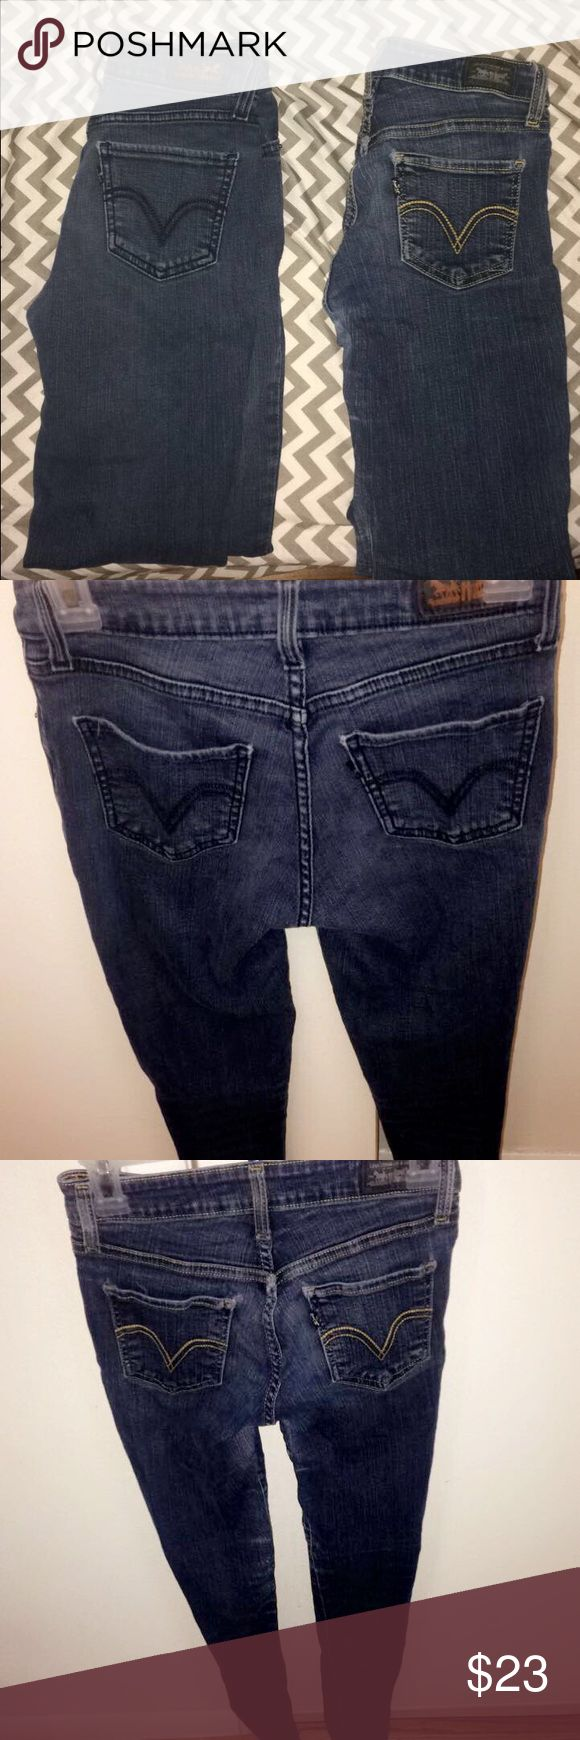 2 pairs of Levi's Skinny Jeans Can sell the 2 Levi's Skinny Jeans together. They're both in good condition. A little wear near the knees on both. Go to my page and check my listings for more pics of the 2 Levi's Skinny Jeans! Size: 3M an size 1M both fit the same. Usually a size 26 in jeans Levi's Jeans Skinny